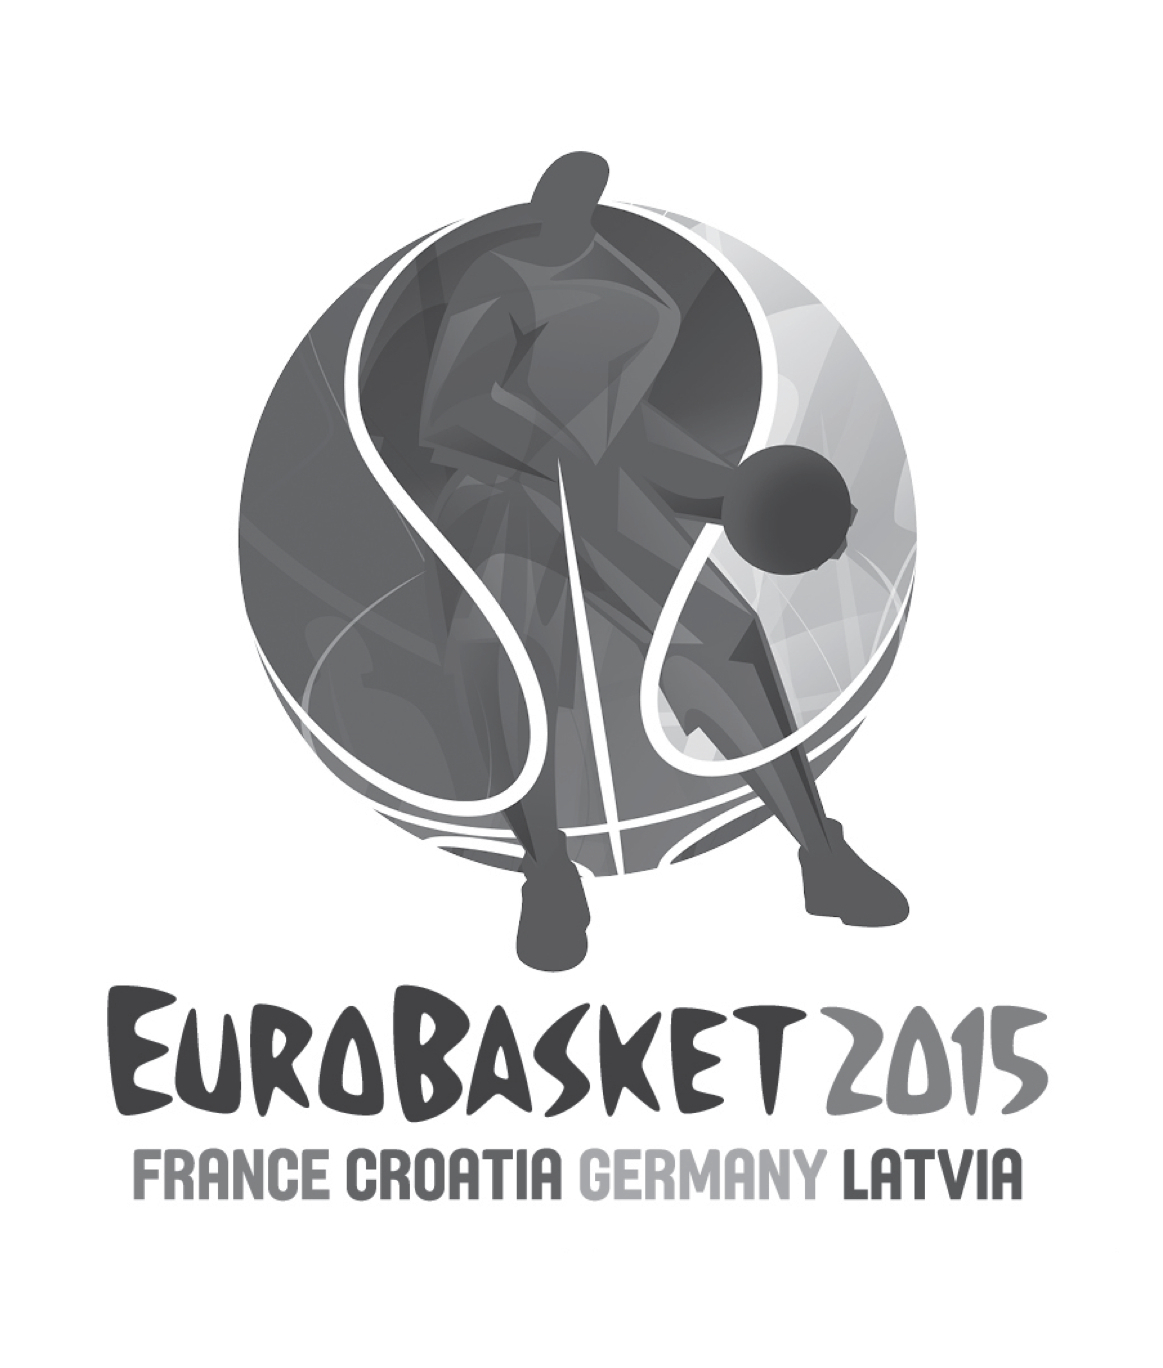 EuroBasket 2015 FRANCE CROATIA GERMANY LATVIA